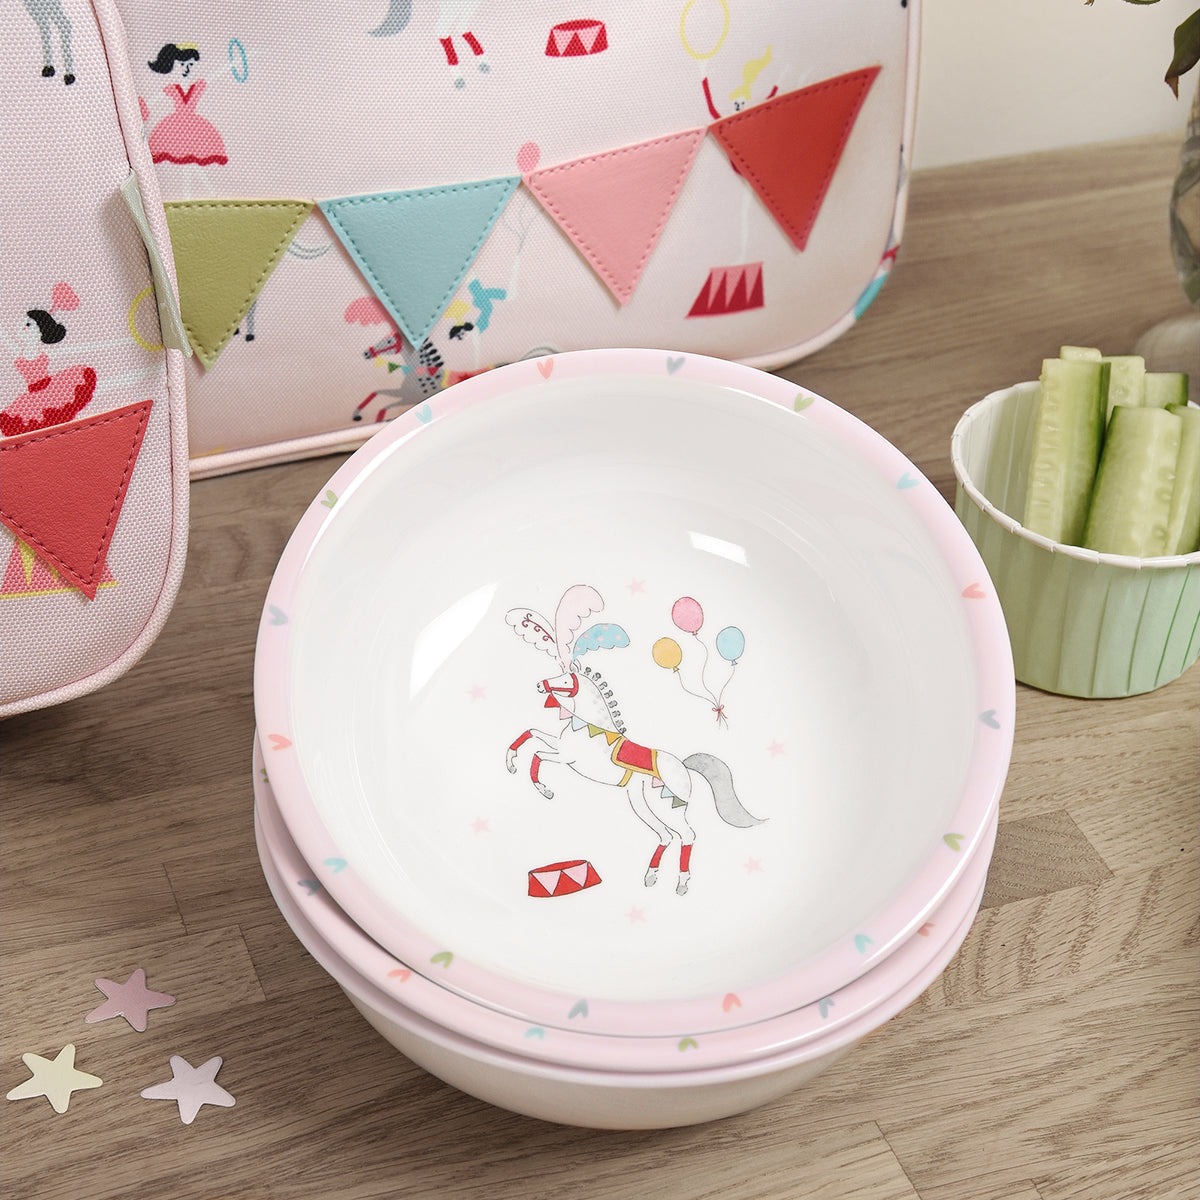 Kids melamine by Sphie Allport part of her new Fairground Ponies Collection